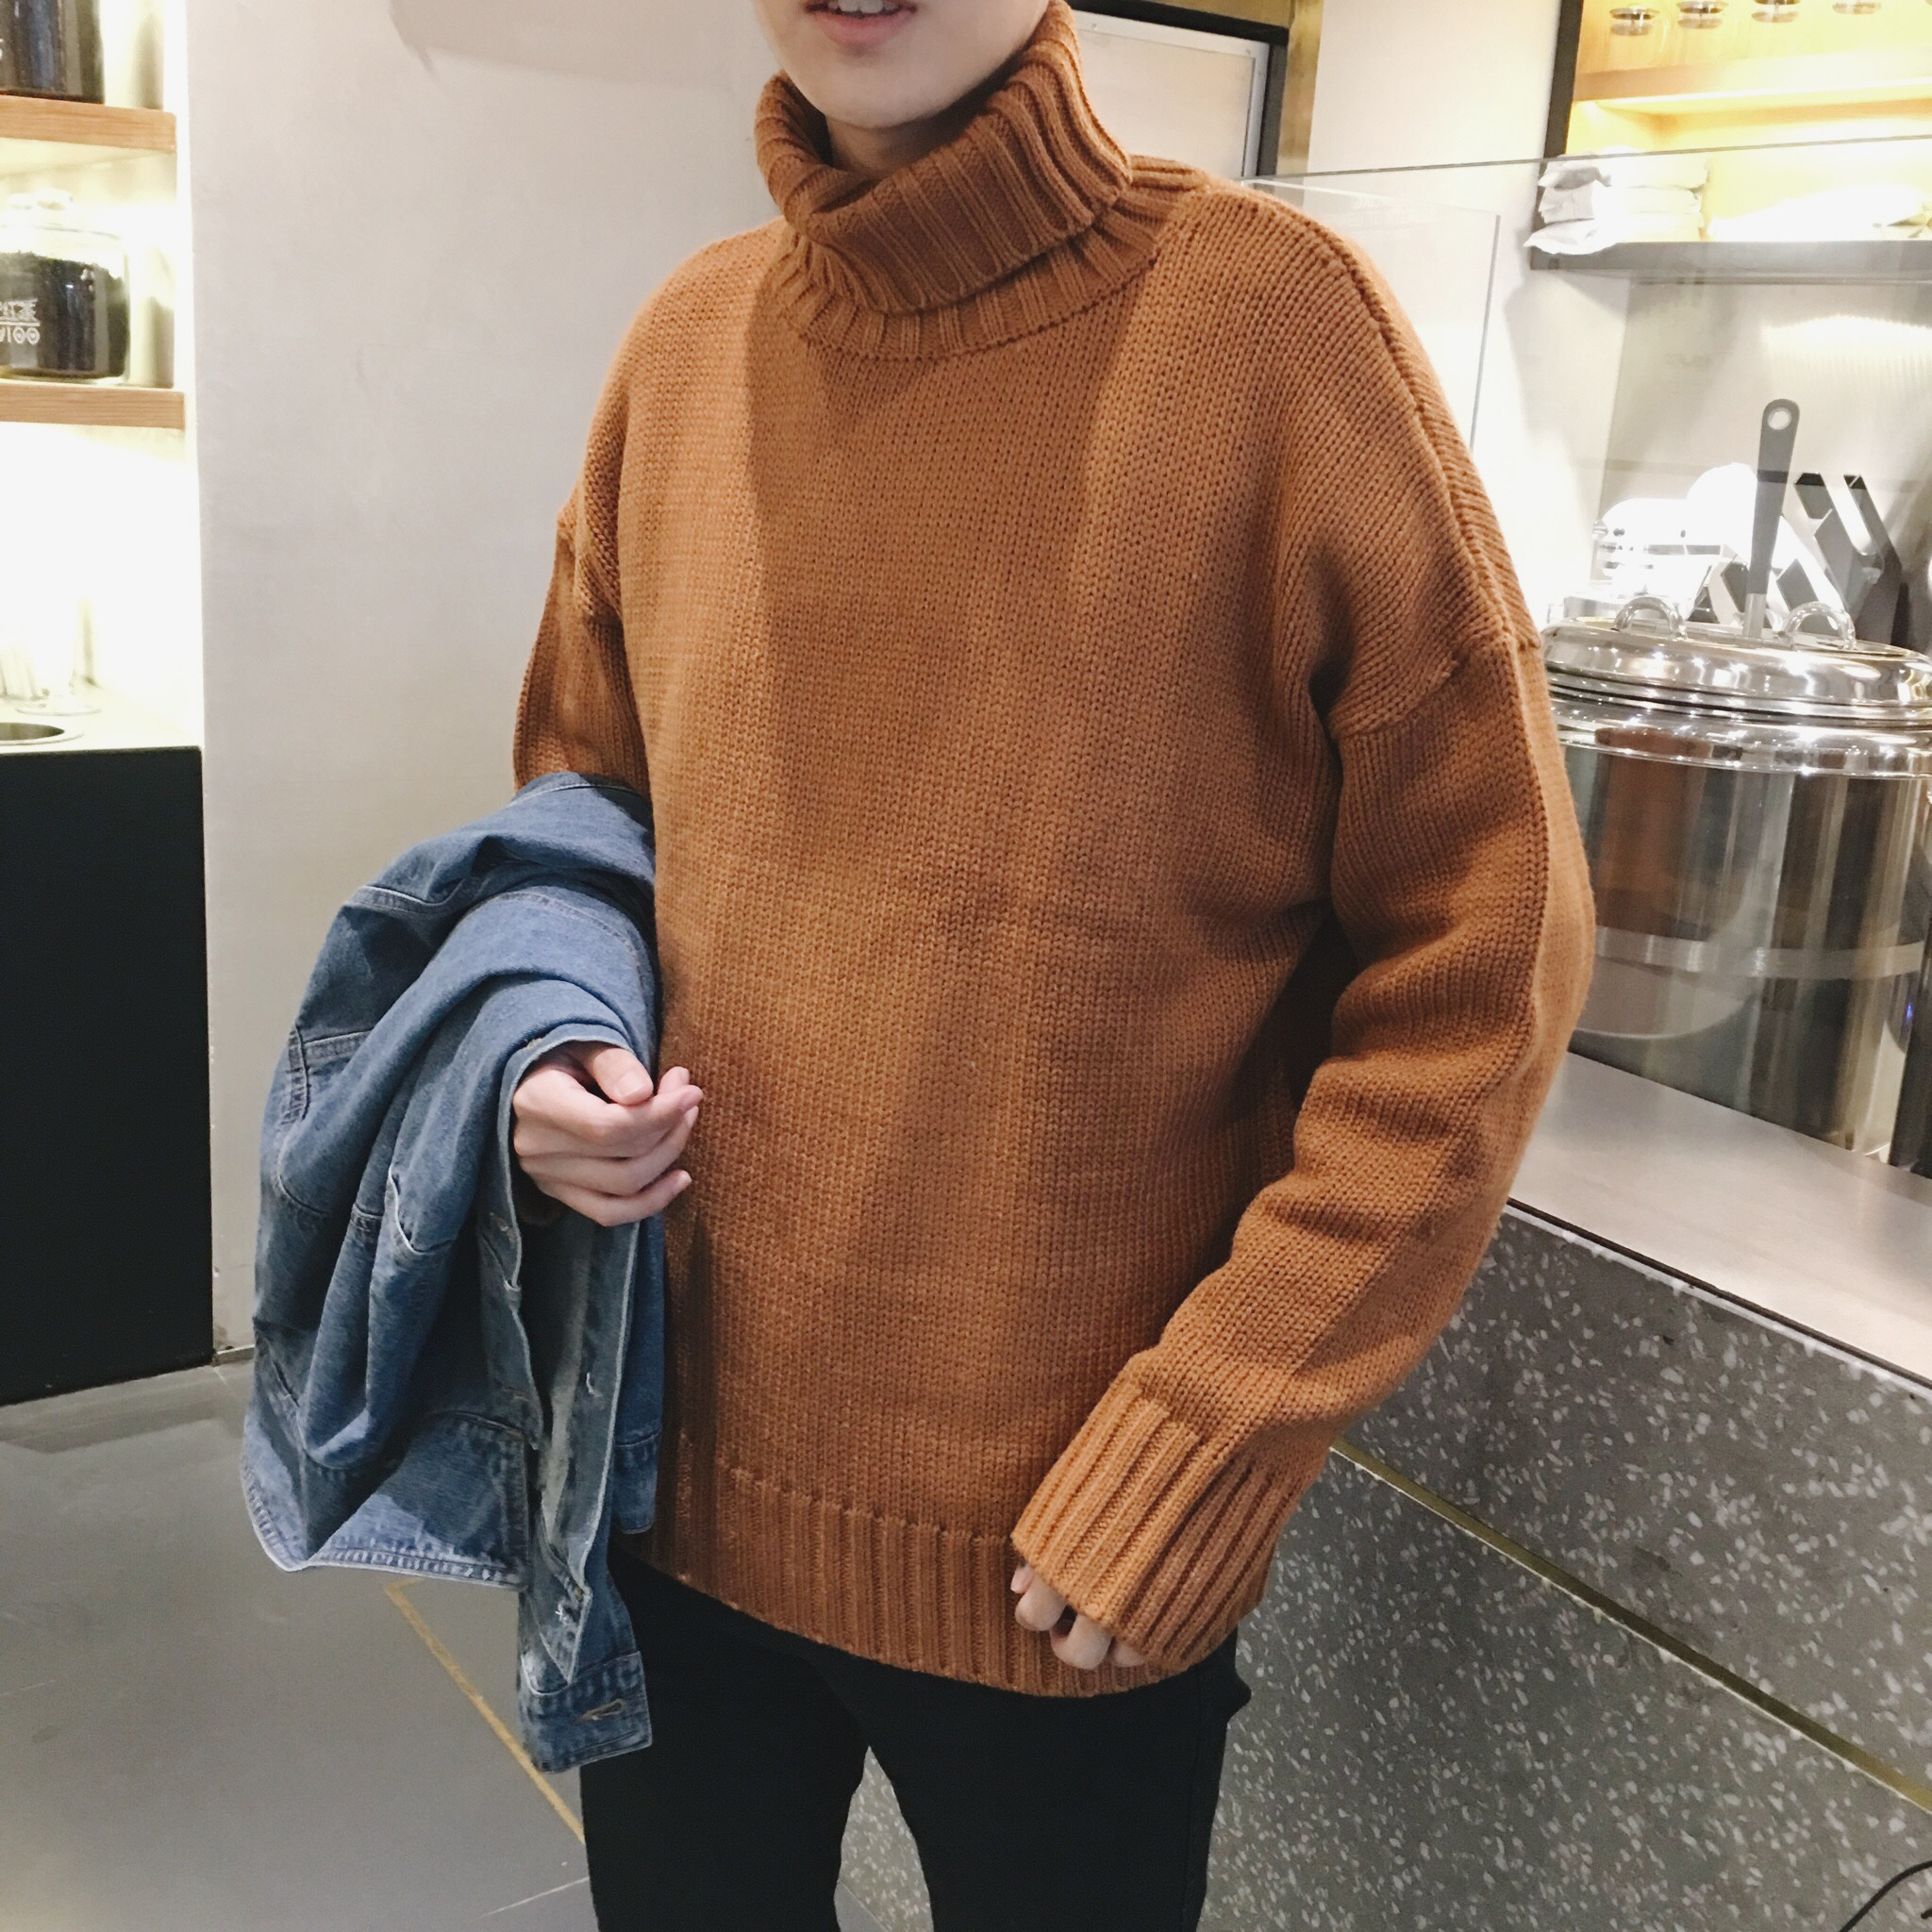 Turtleneck Sweater Men's Trend Couple Original Wind Loose Sweater Jacket Men's Autumn Winter Uniform 2019 New